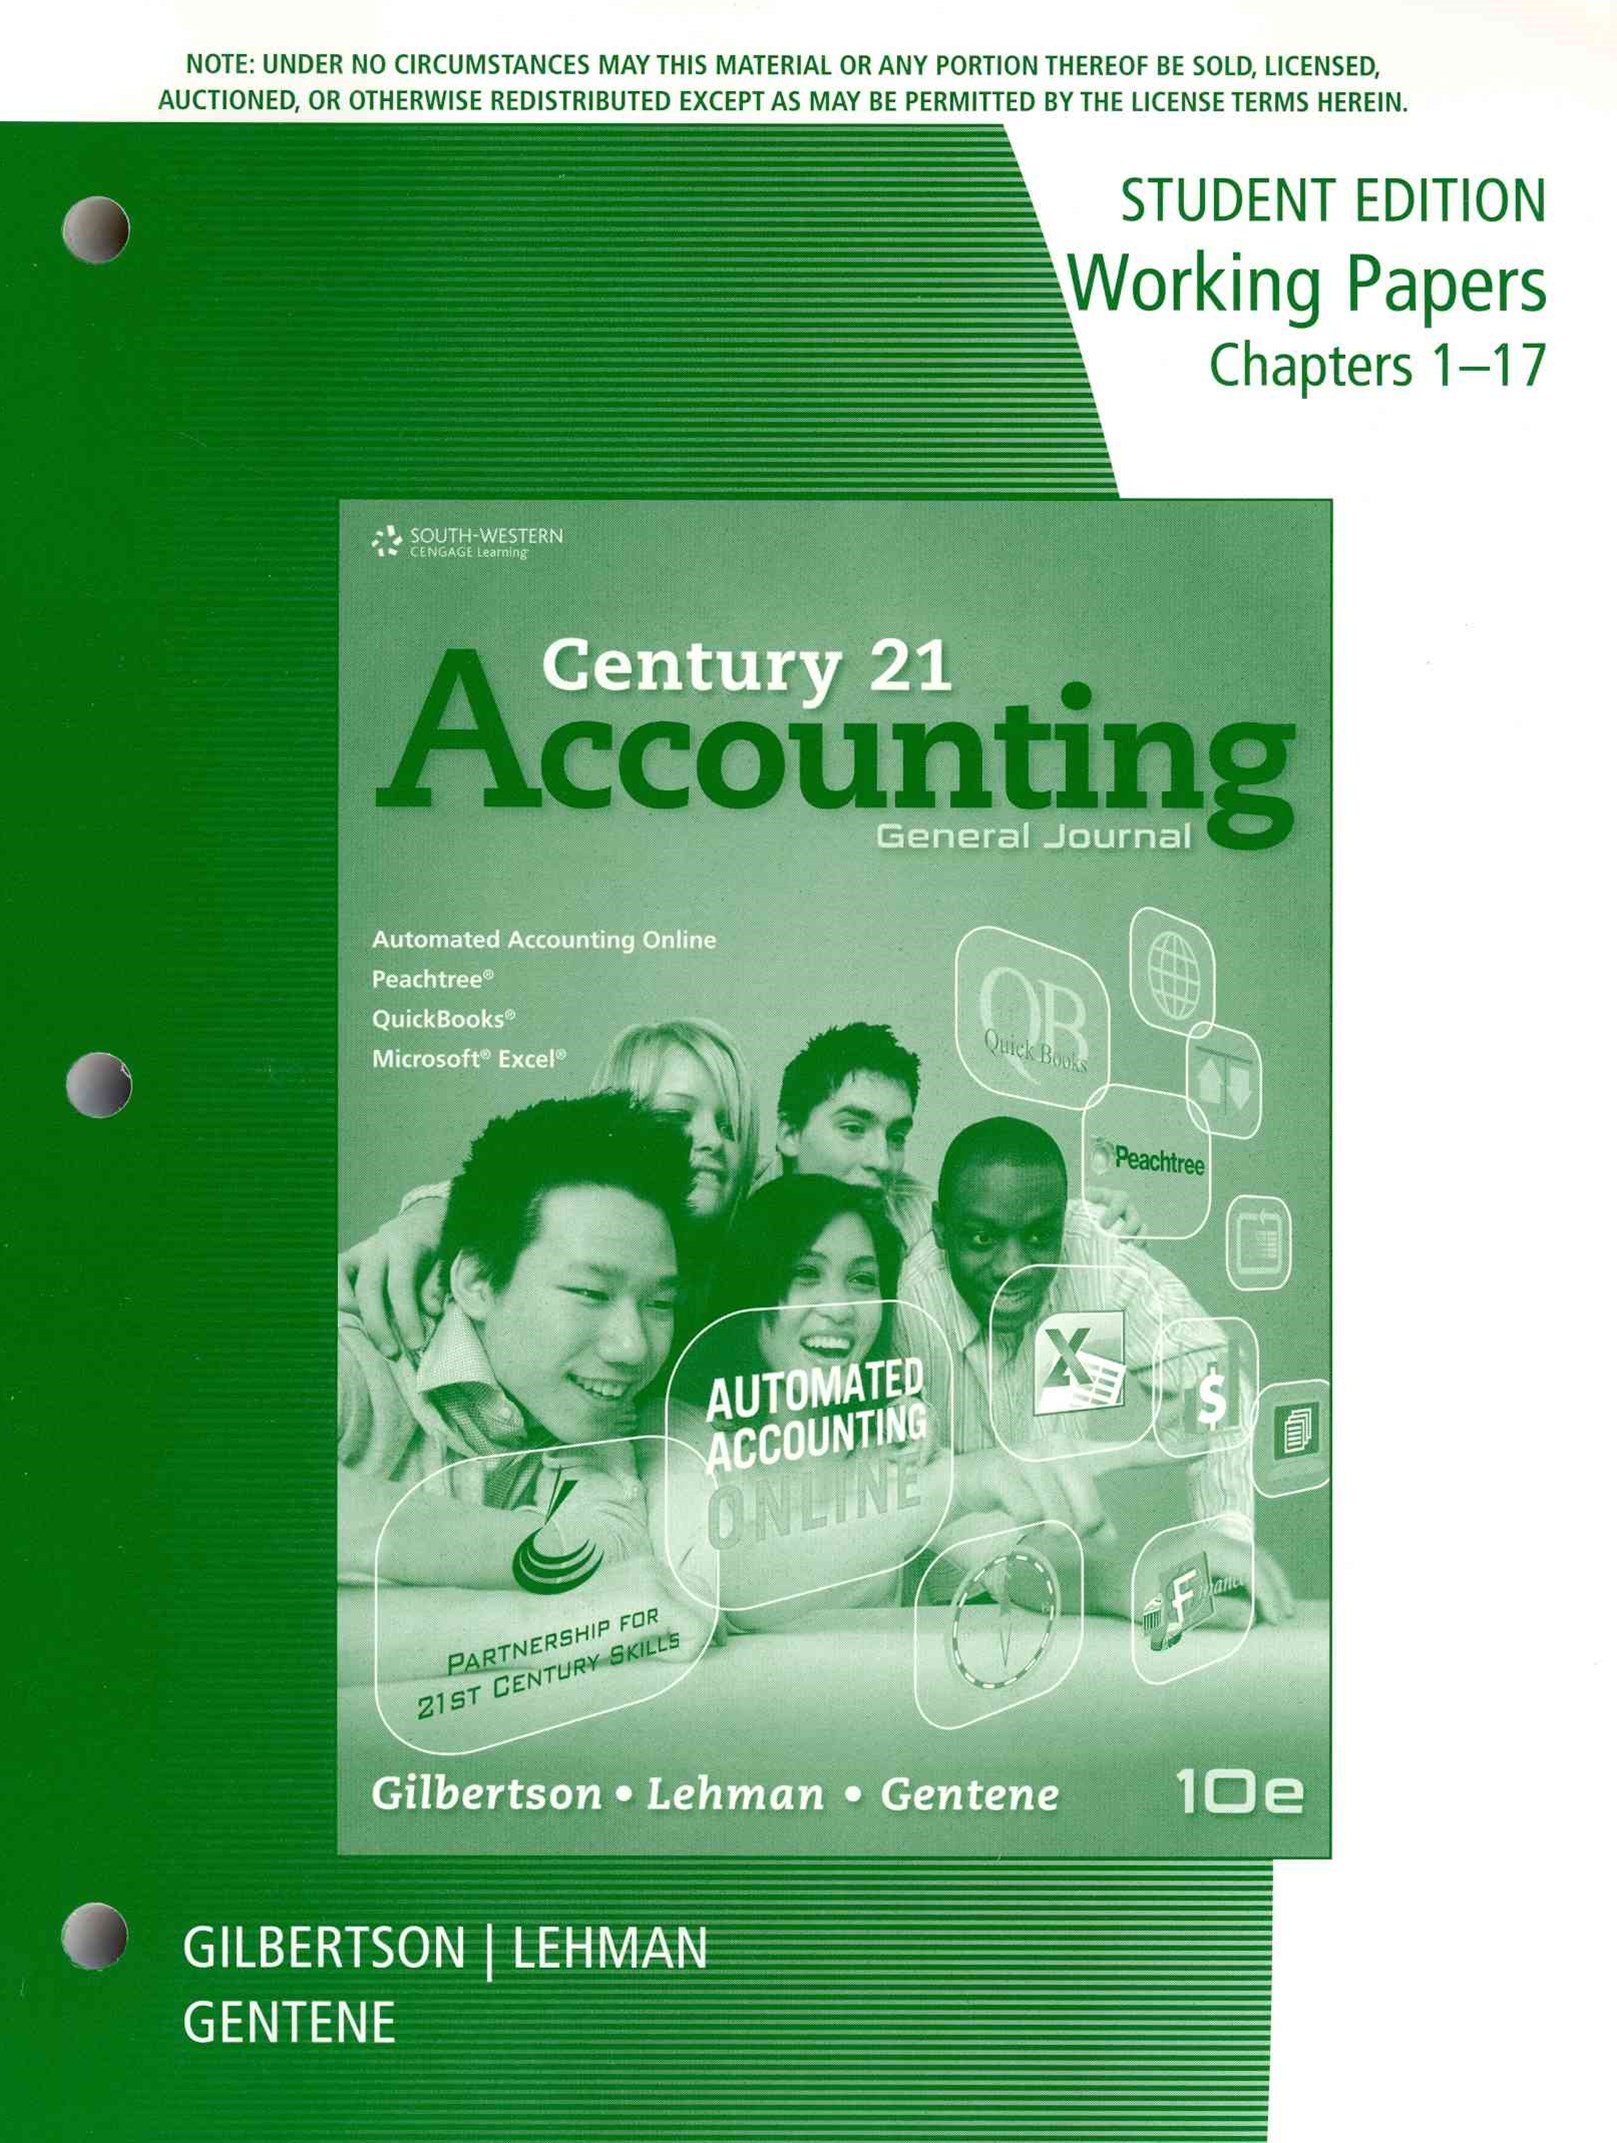 Working Papers, Chapters 1-17 for Gilbertson/Lehman/Gentene's Century  21 Accounting: General Journal, 10th